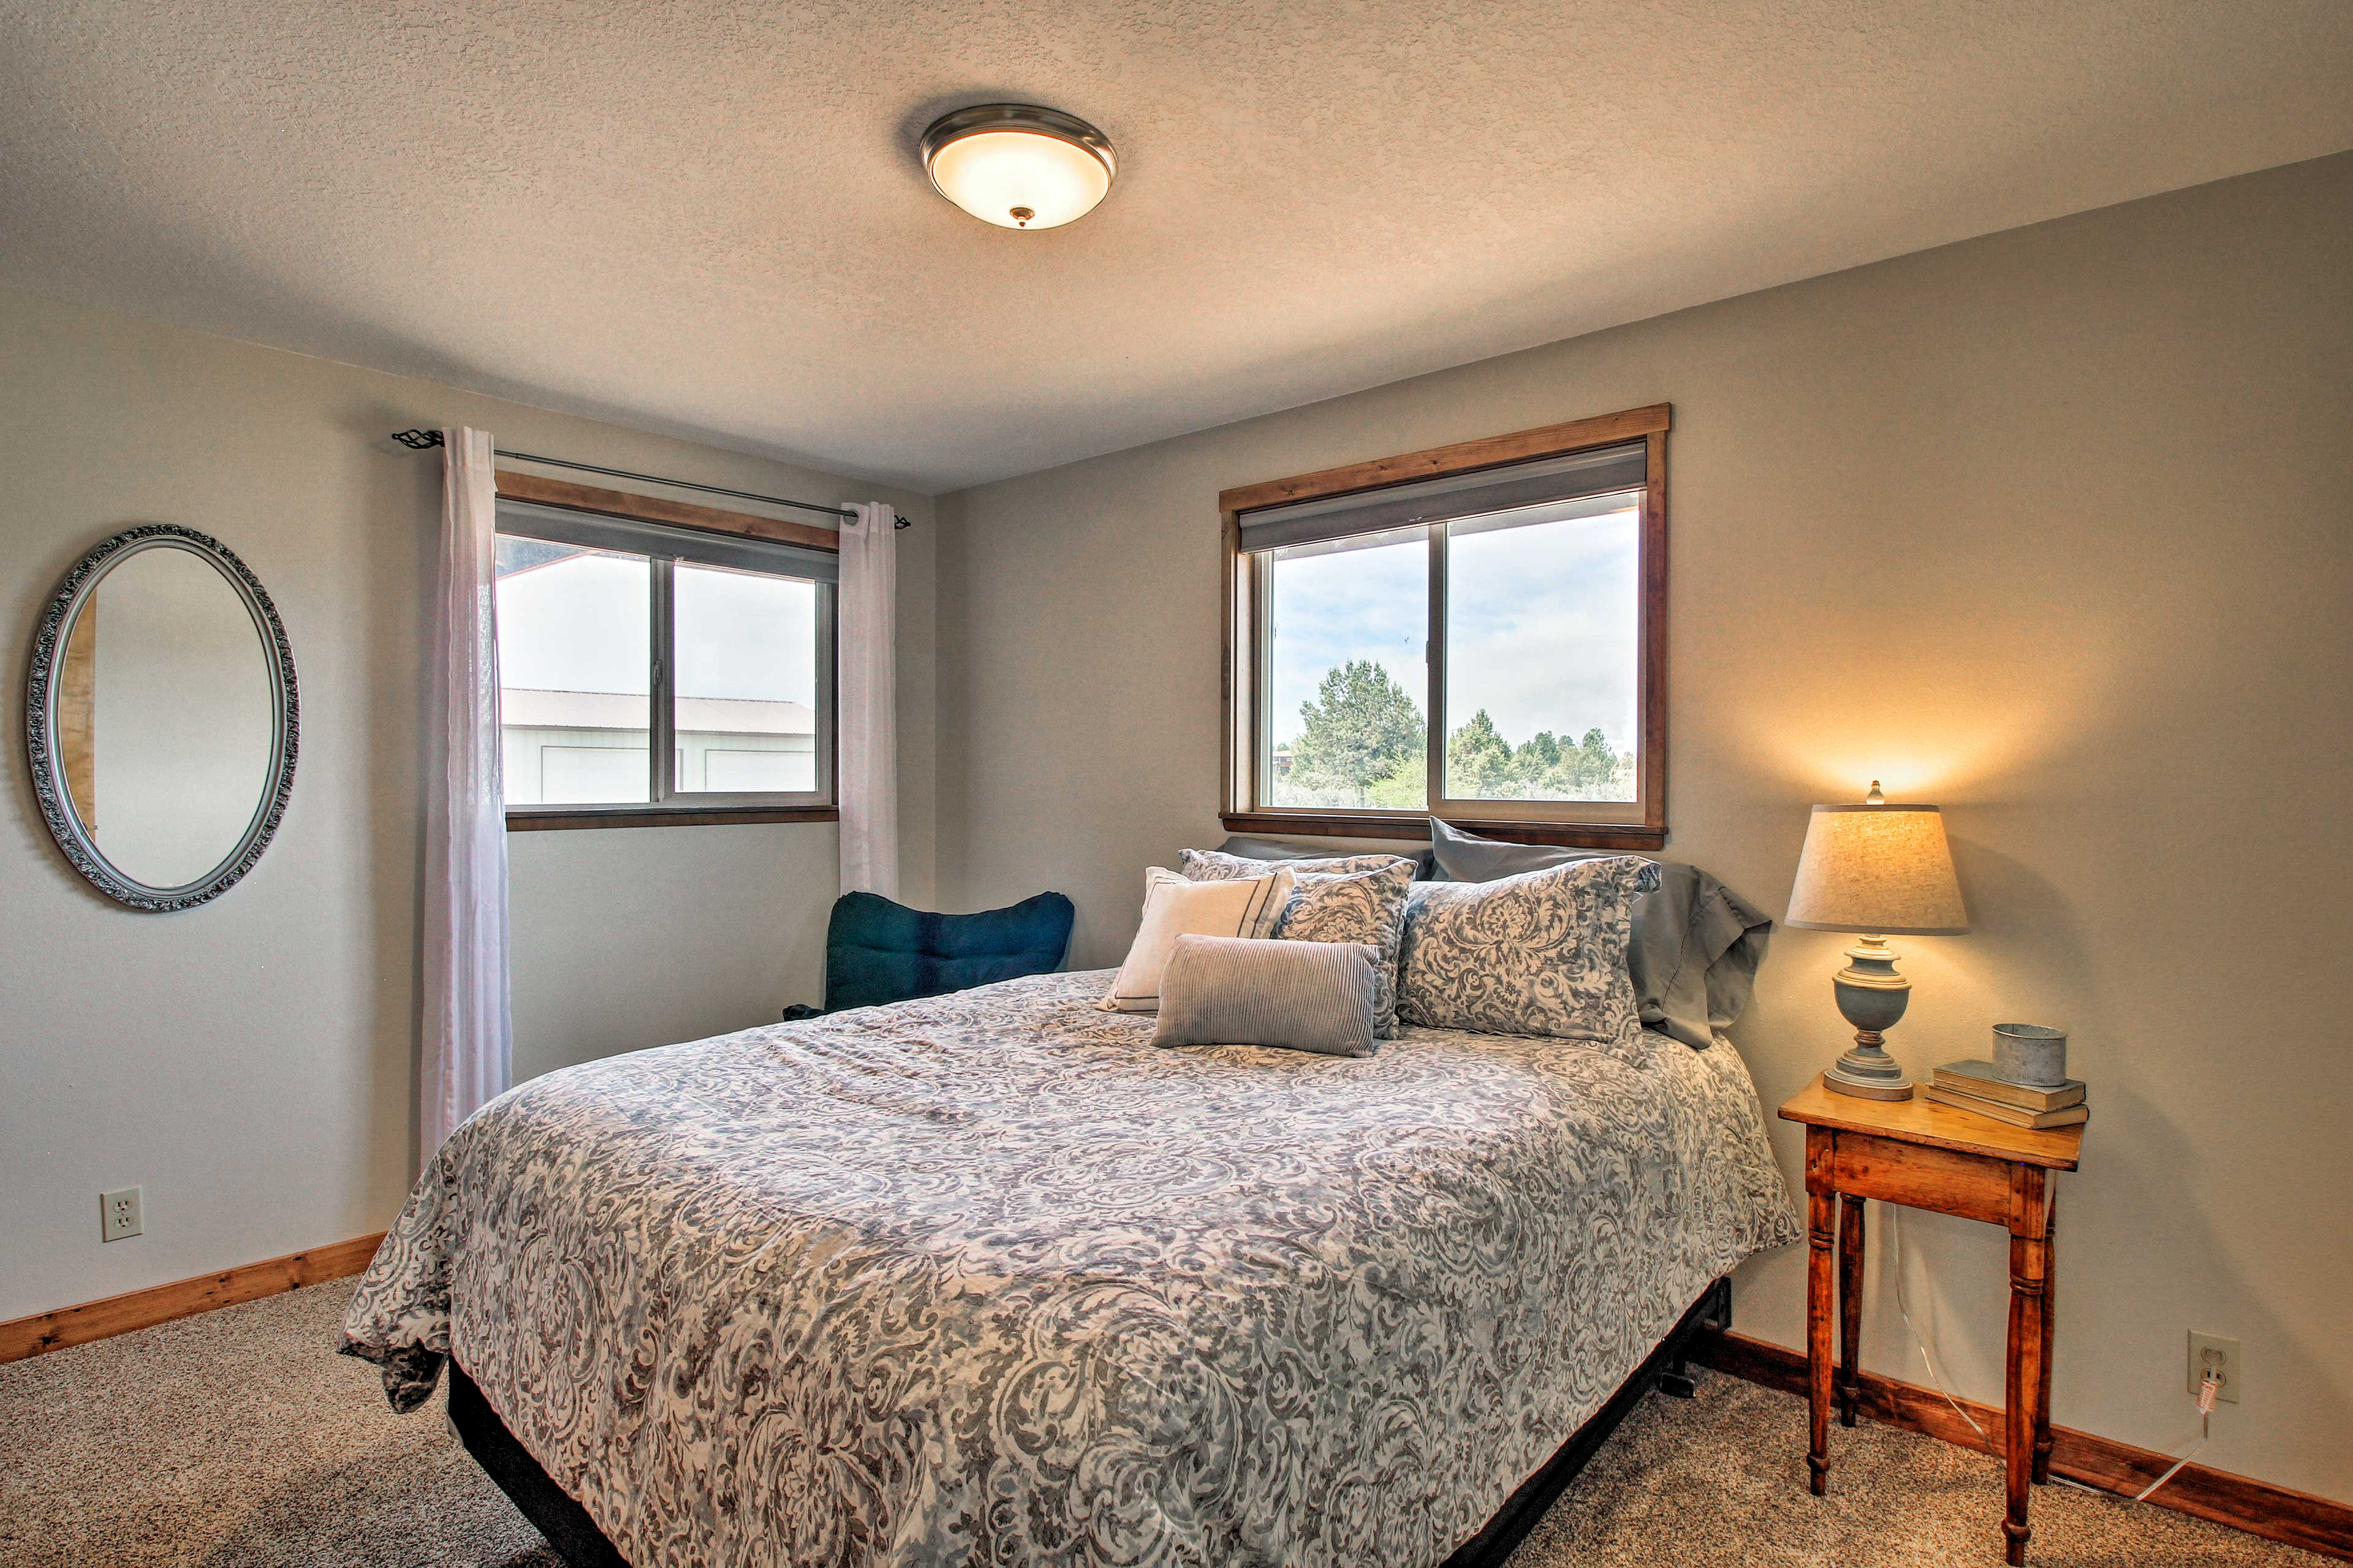 The second bedroom also offers a queen-sized bed.